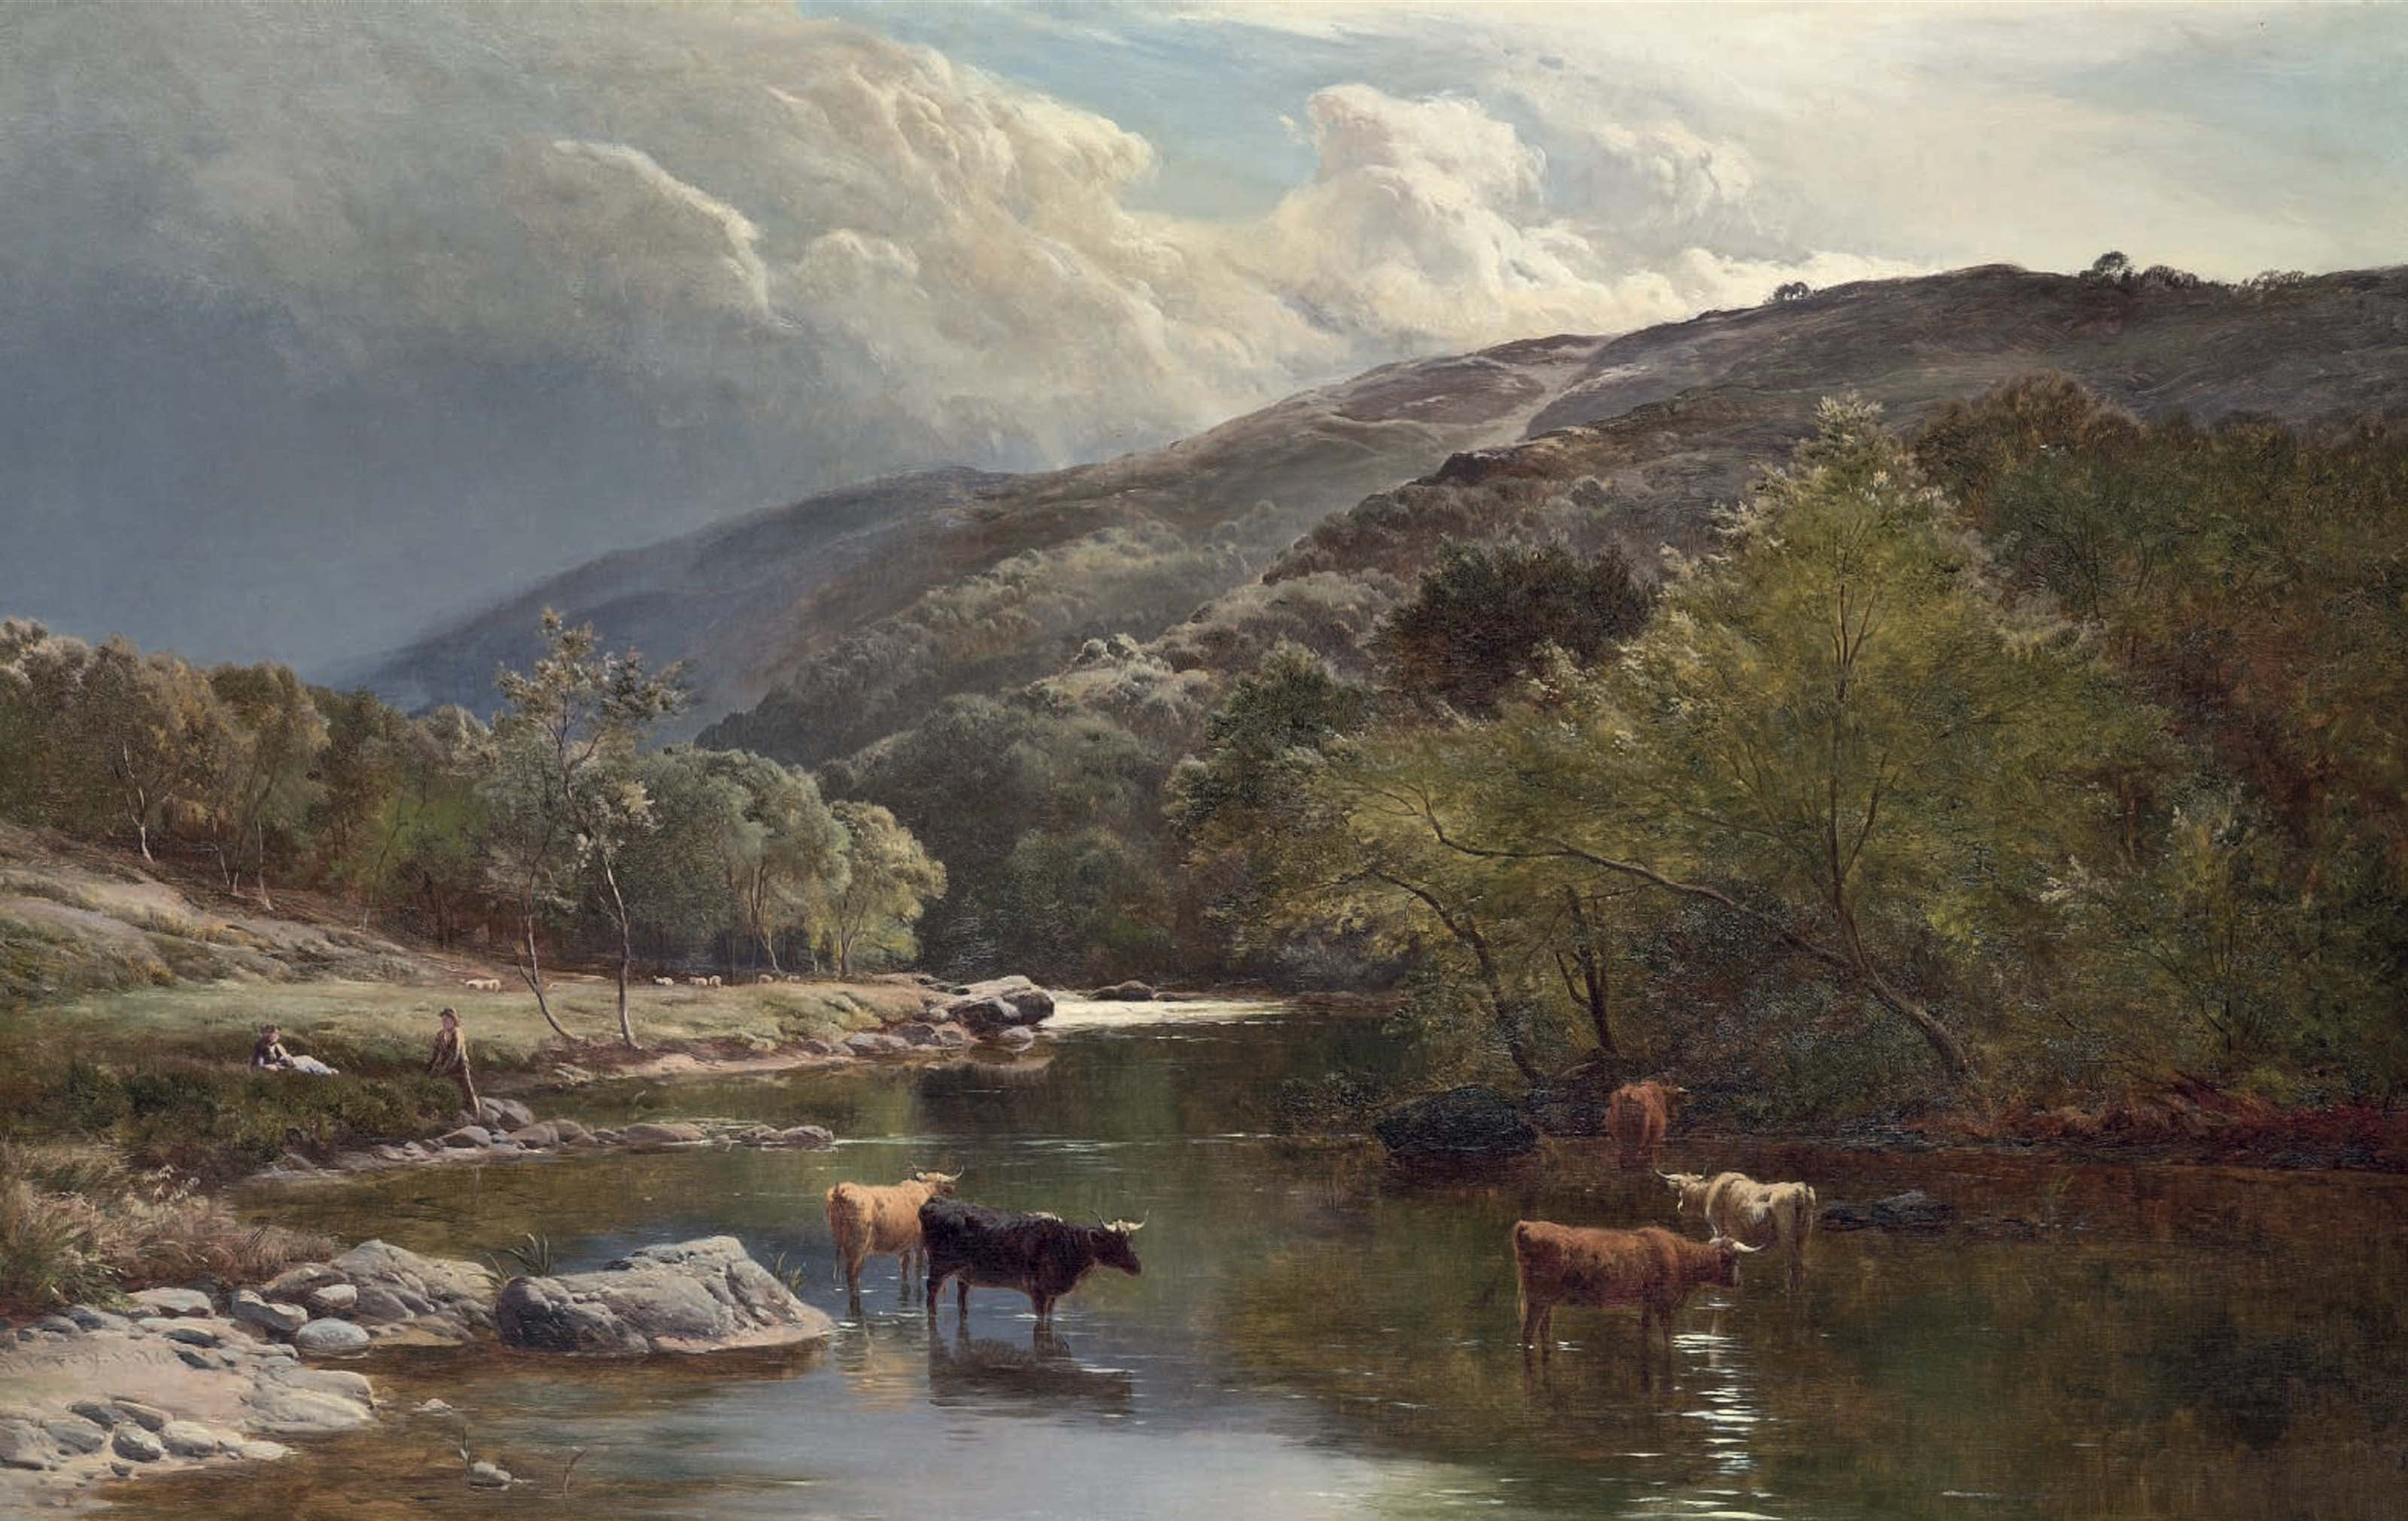 Cattle watering in the River Lyn, North Devon